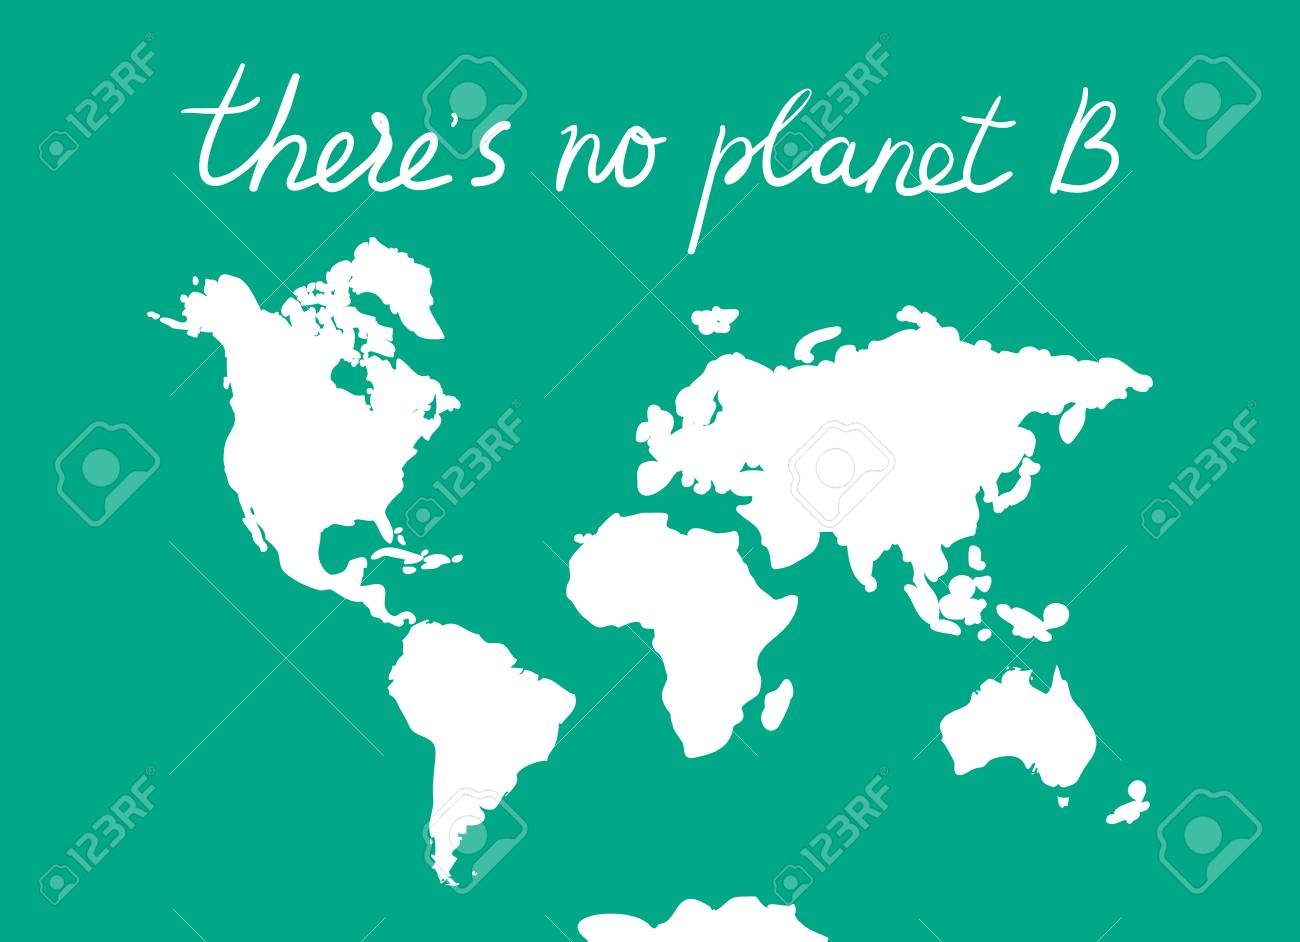 There Is No Planet B World Map White Silhouettes Of Continents